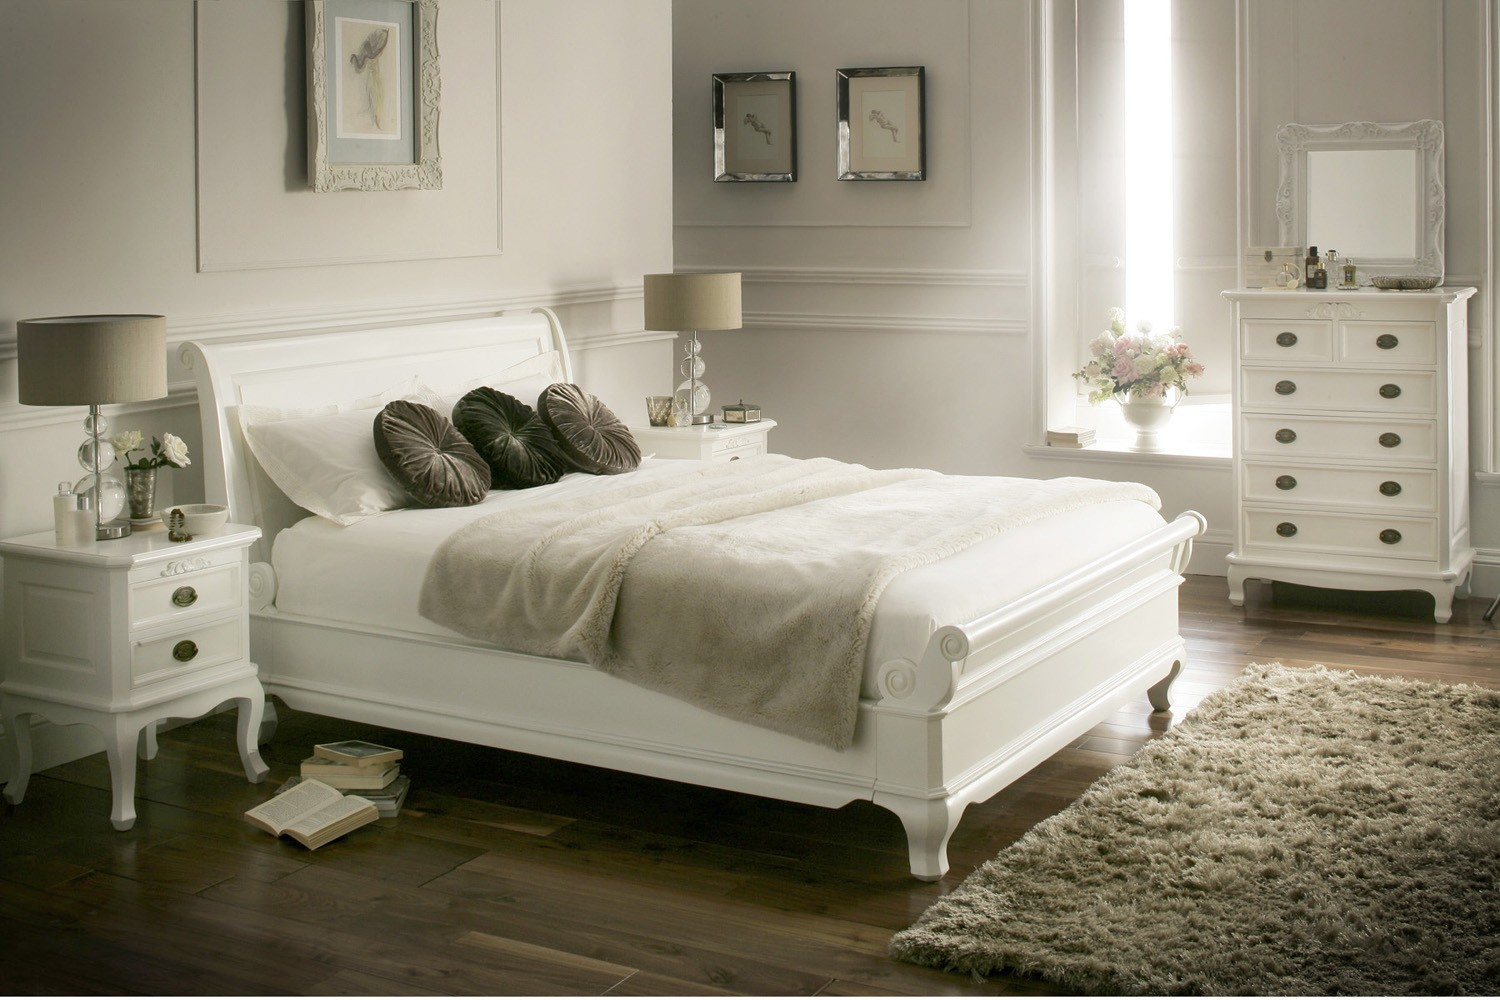 Upholstered Headboard Bedroom Sets | Pottery Barn Sleigh Bed | King Size Platform Bed with Headboard